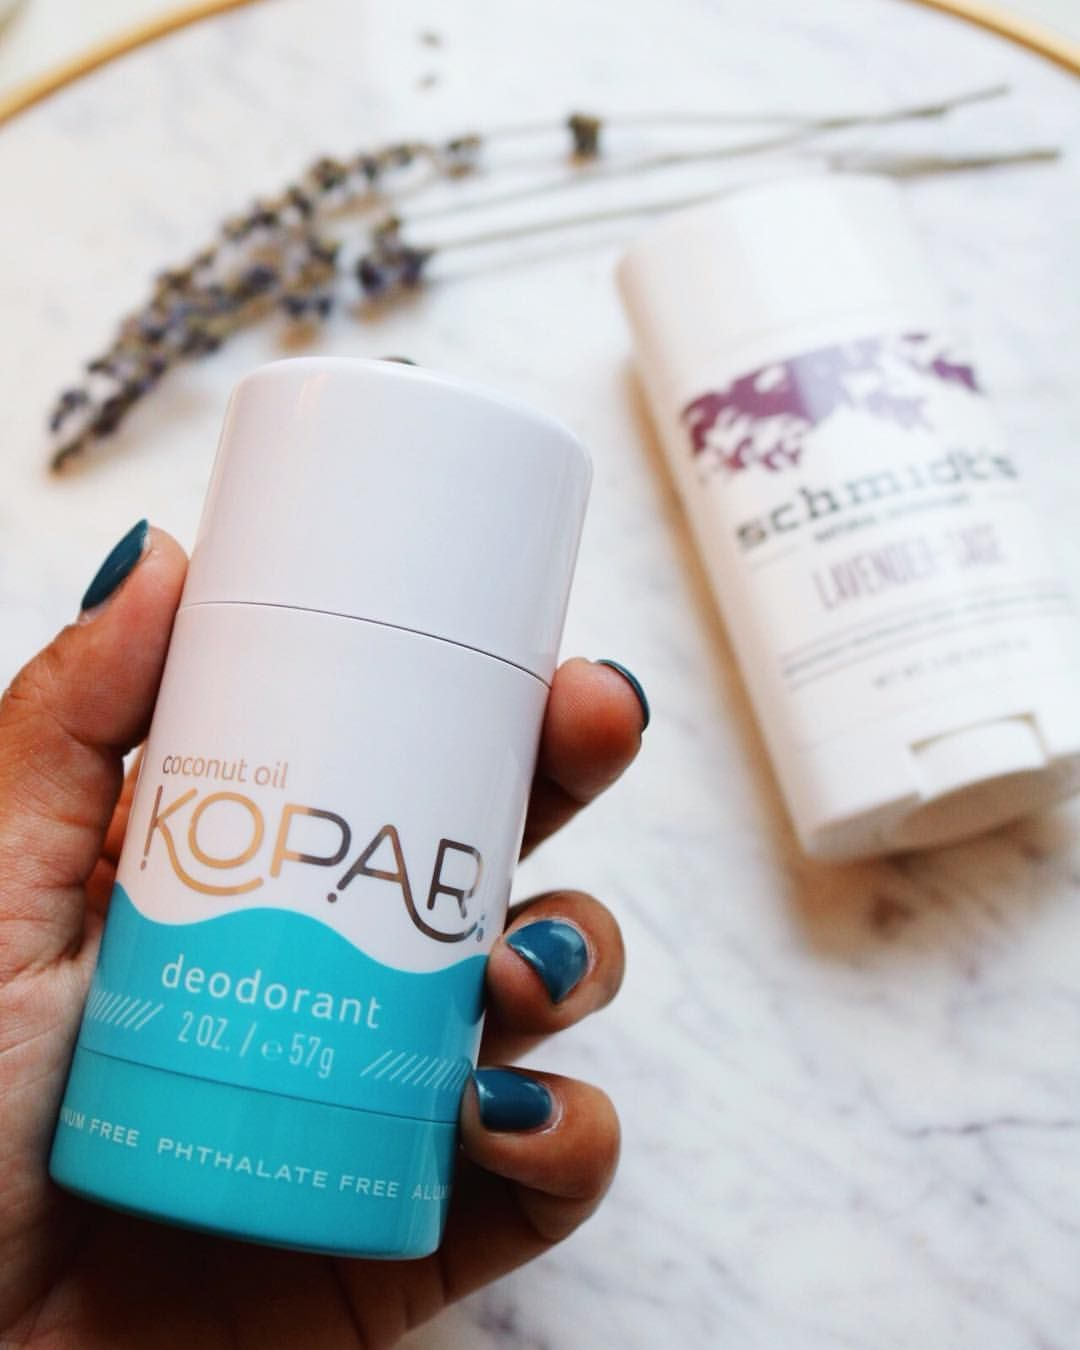 Have you thought about switching to a natural deodorant